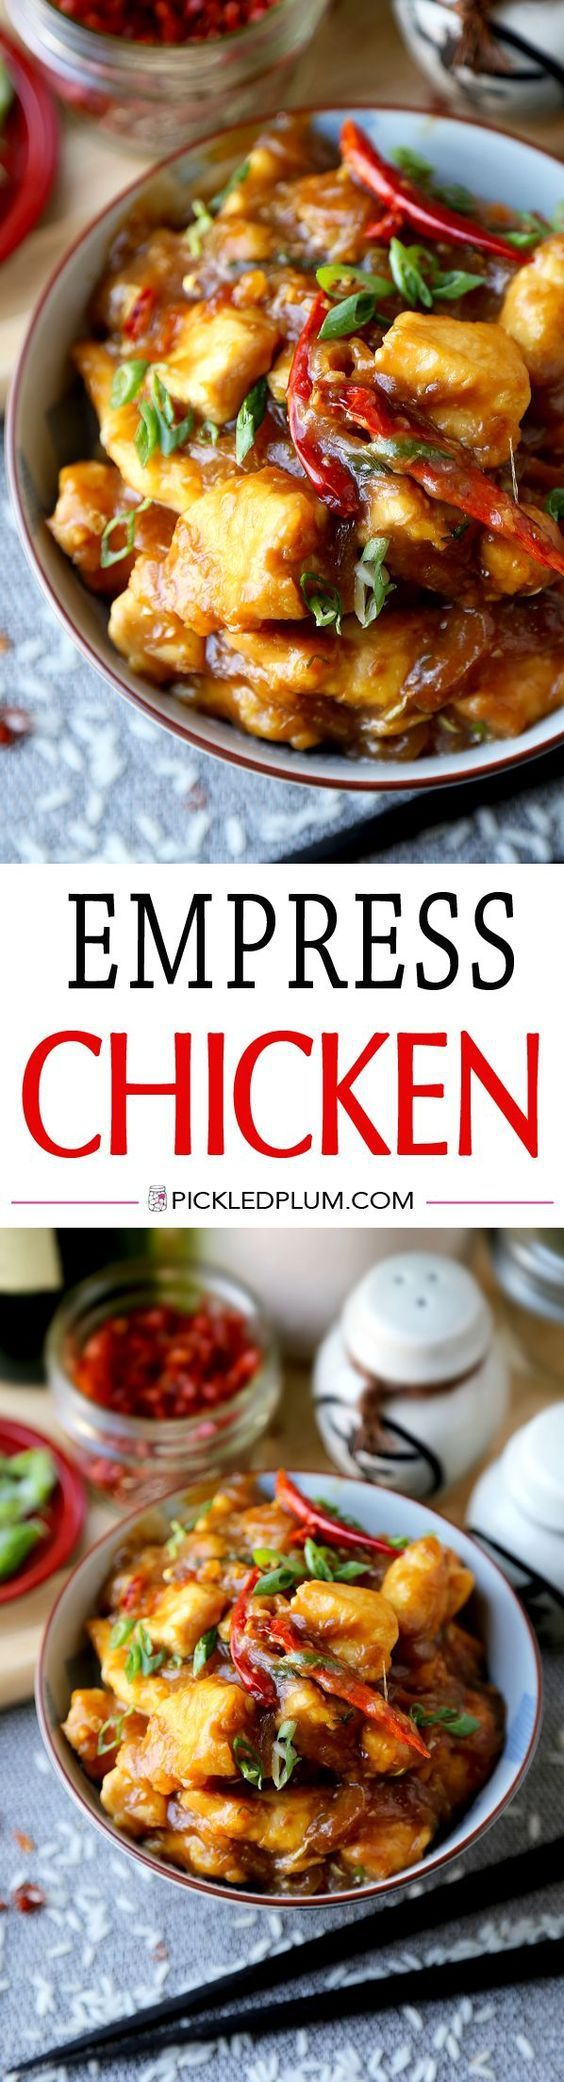 Sweet and sour Empress Chicken Recipe that's better than takeout! This is an easy stir fry with tender chicken pieces and vegetables ready…